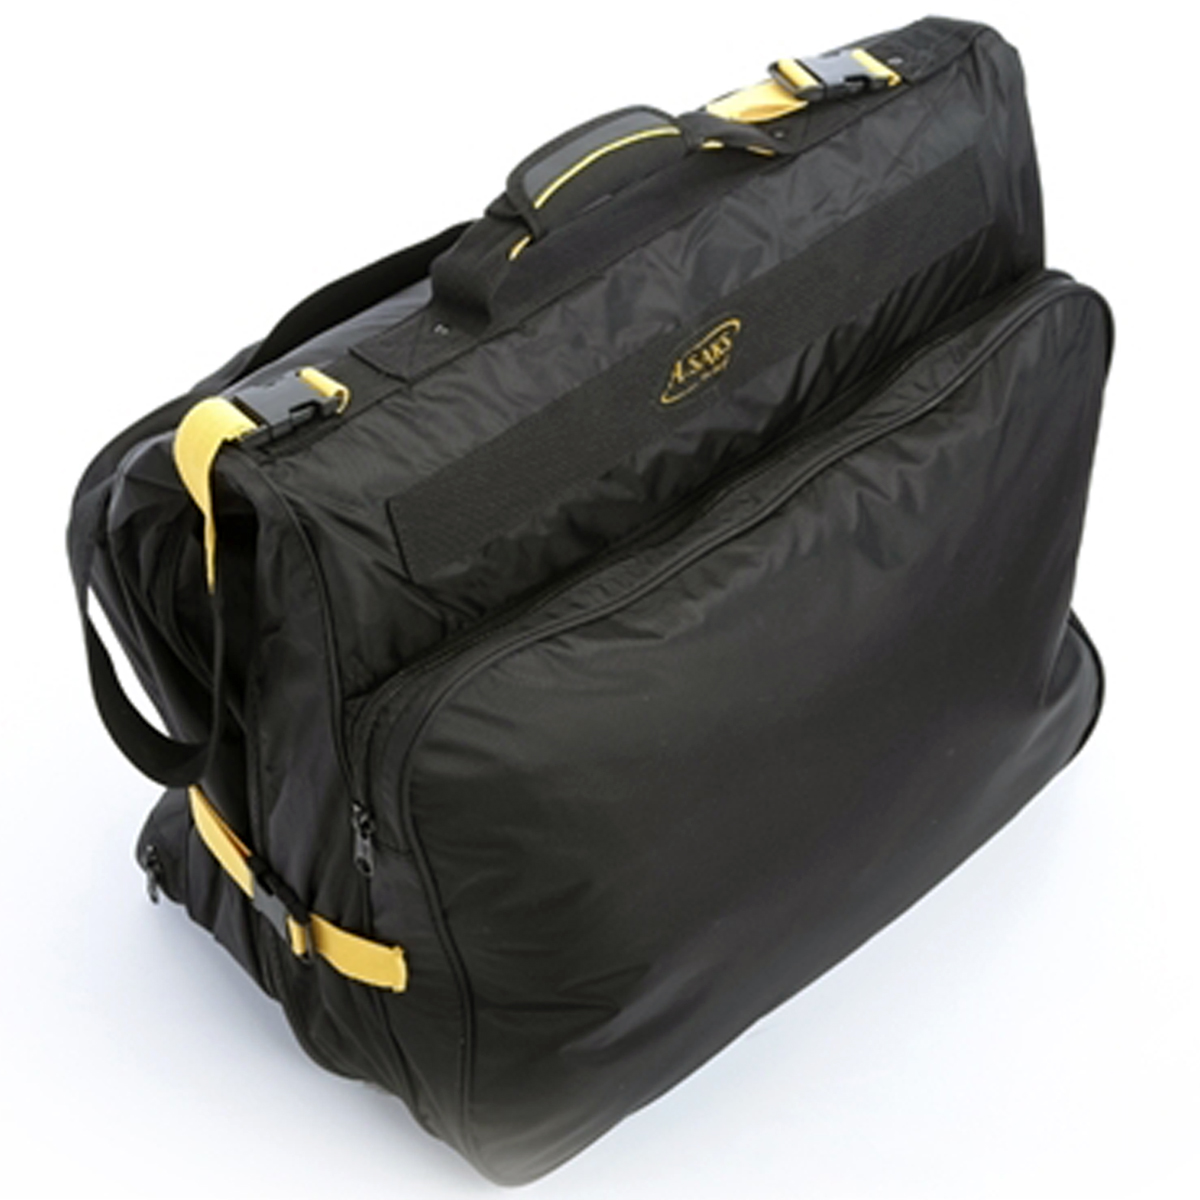 A. Saks AE-46 Expandable Deluxe Garment Bag